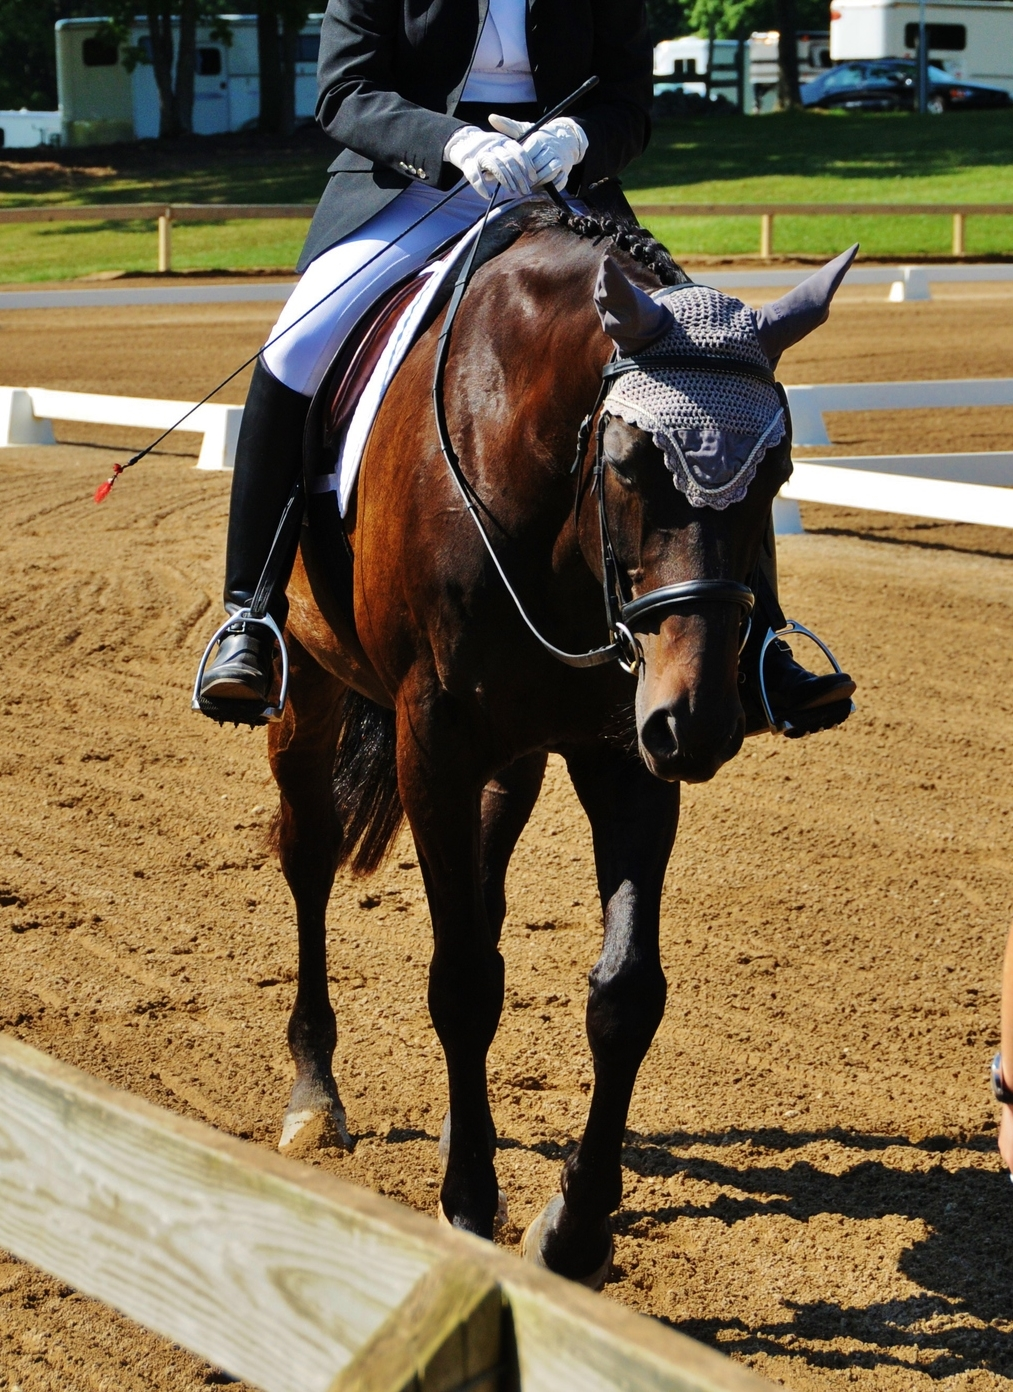 Noble after finishing a test at a horse show.